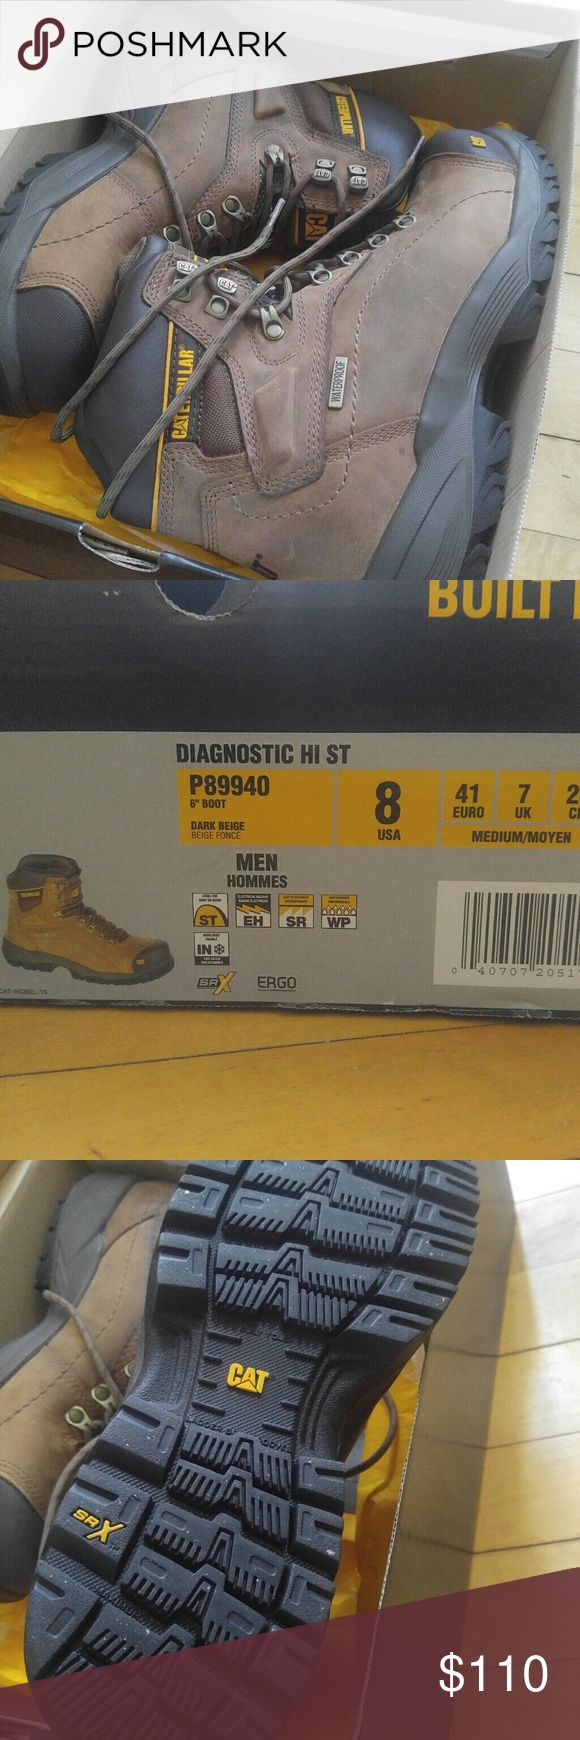 Brand New Men's Caterpillar Work Boots SIZE 8 These are men's boots. Brands new and never worn only tried on. They have an extra set of insoles along with the original ones. Those are brand new as well. These will fit a women's 9-10 comfortably. I'm a size 8.5 in women's so I added the insoles for a snug fit.  Price is negotiable within reason! Caterpillar Shoes